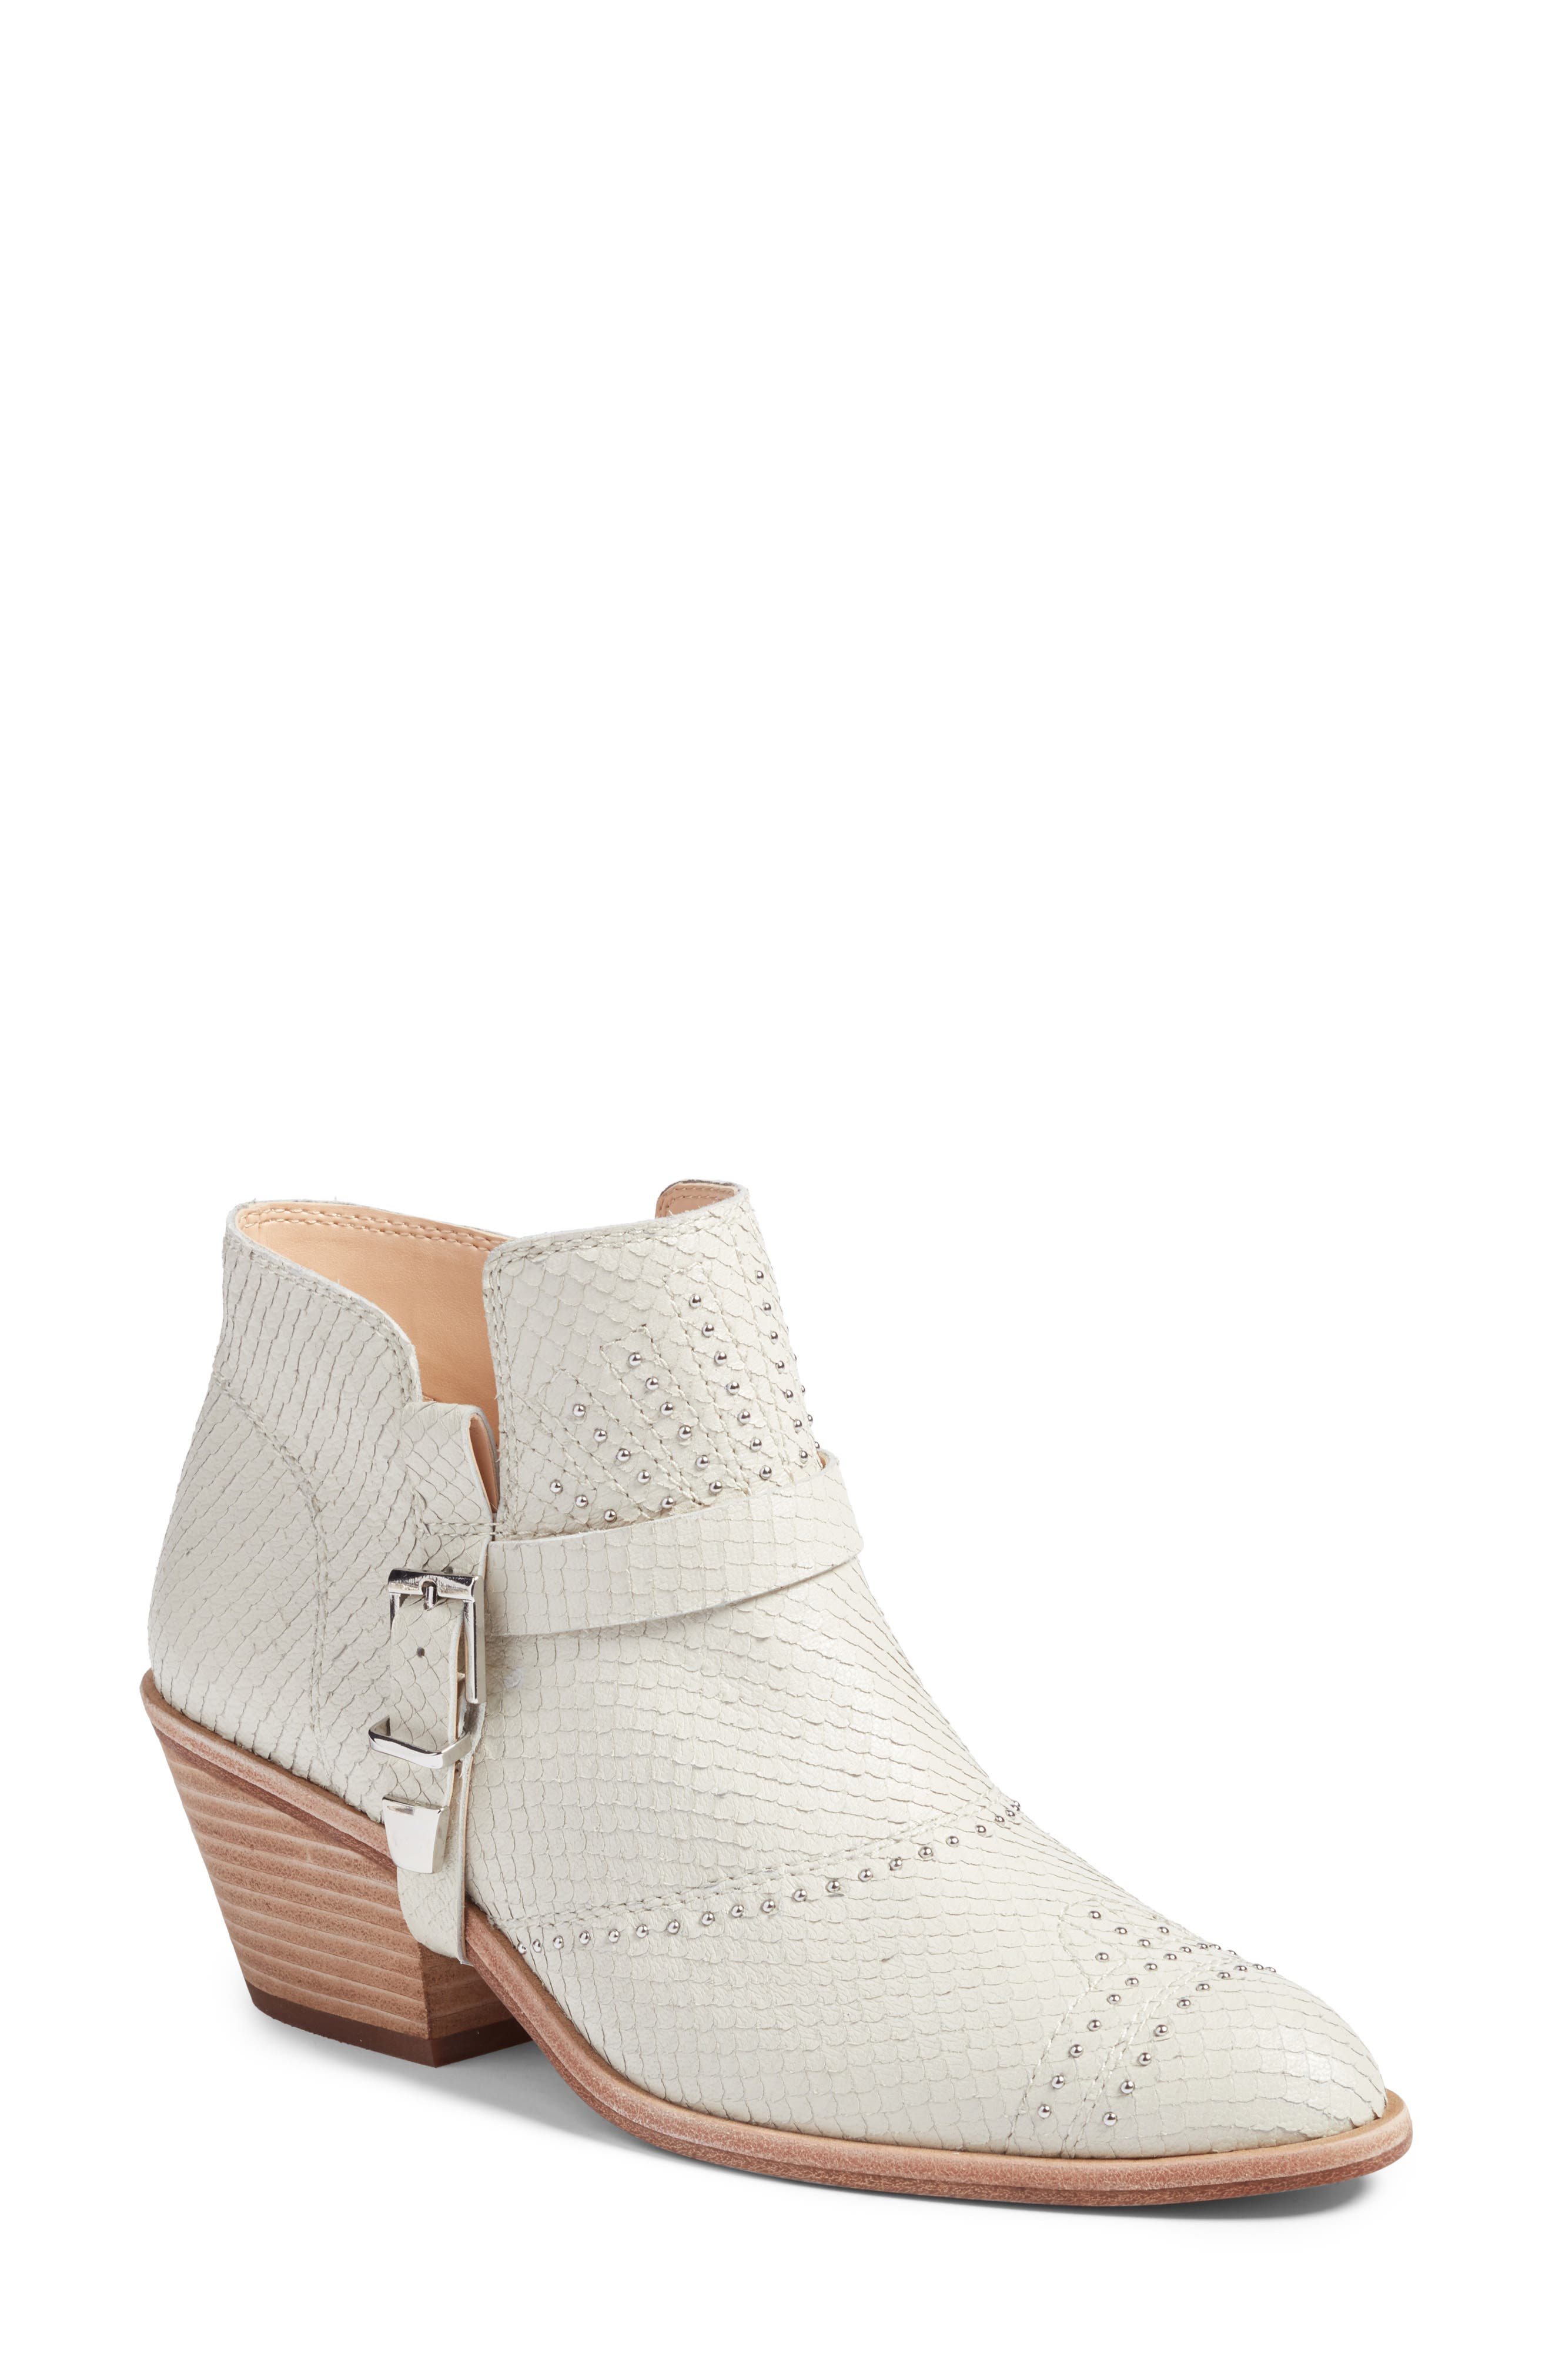 Dorintina Bootie,                             Main thumbnail 1, color,                             White Fox Trot